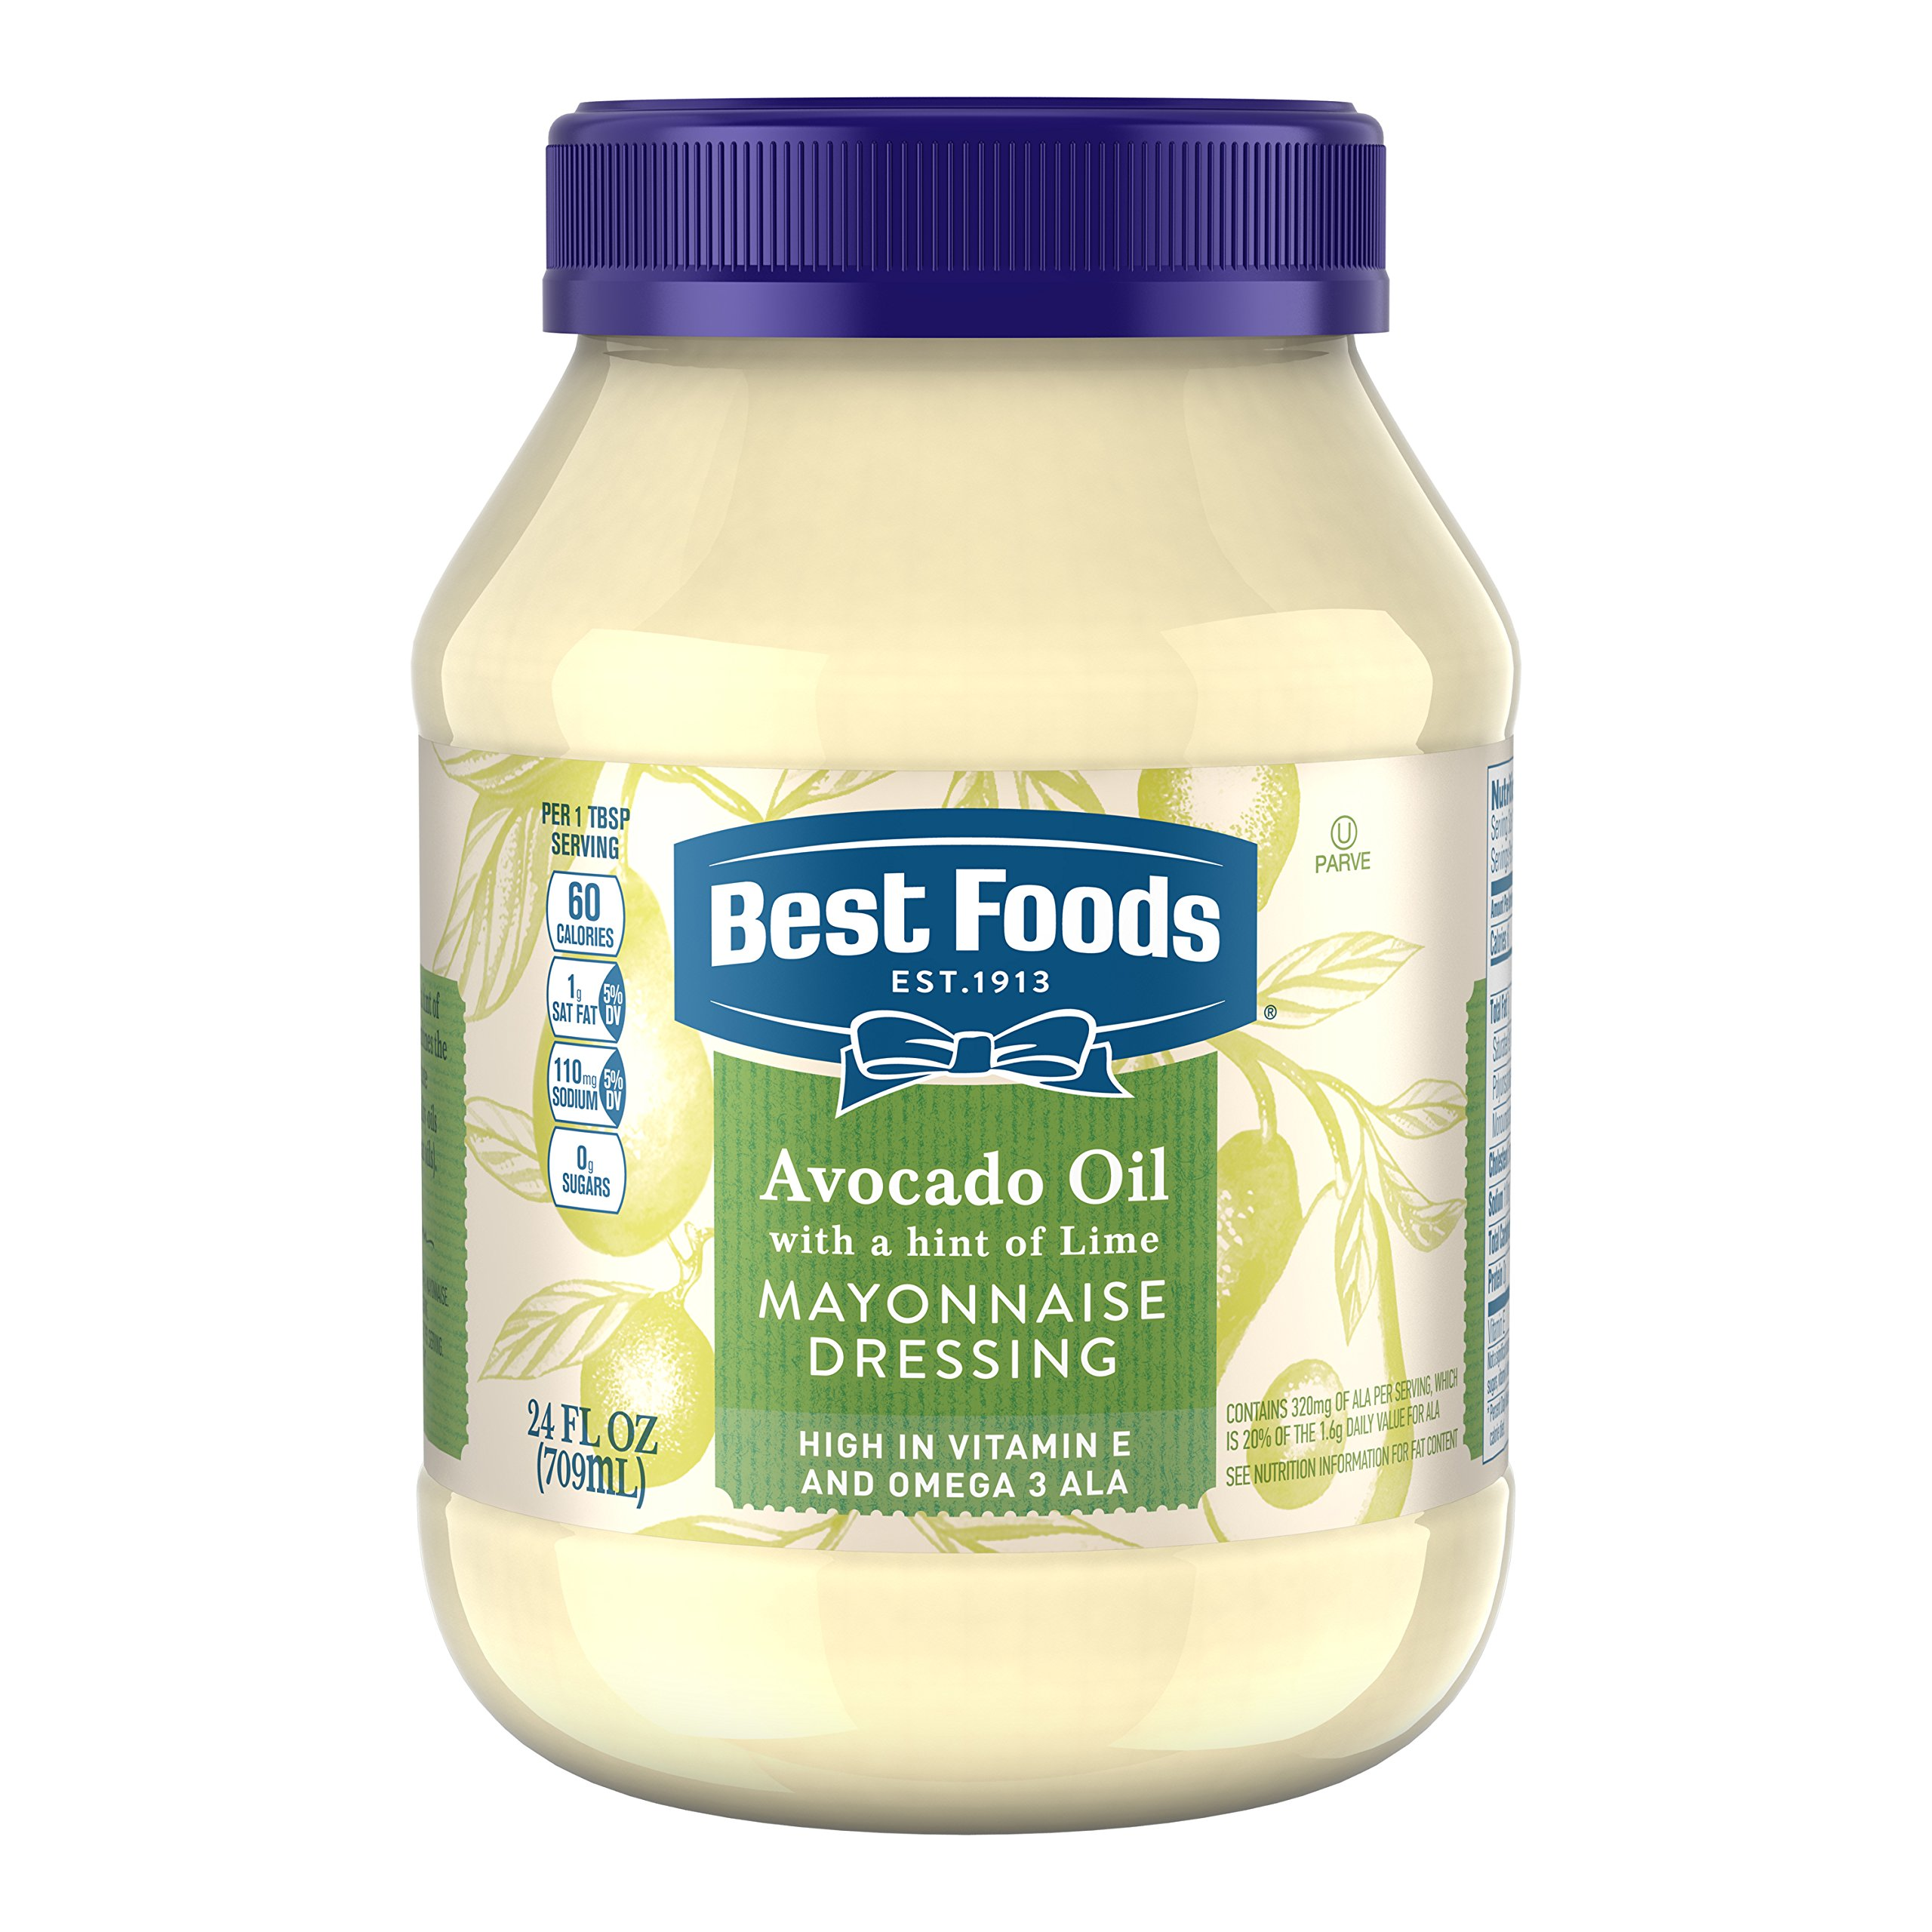 Best Foods Mayonnaise Dressing, Sunflower Oil with a hint of Lemon 24oz